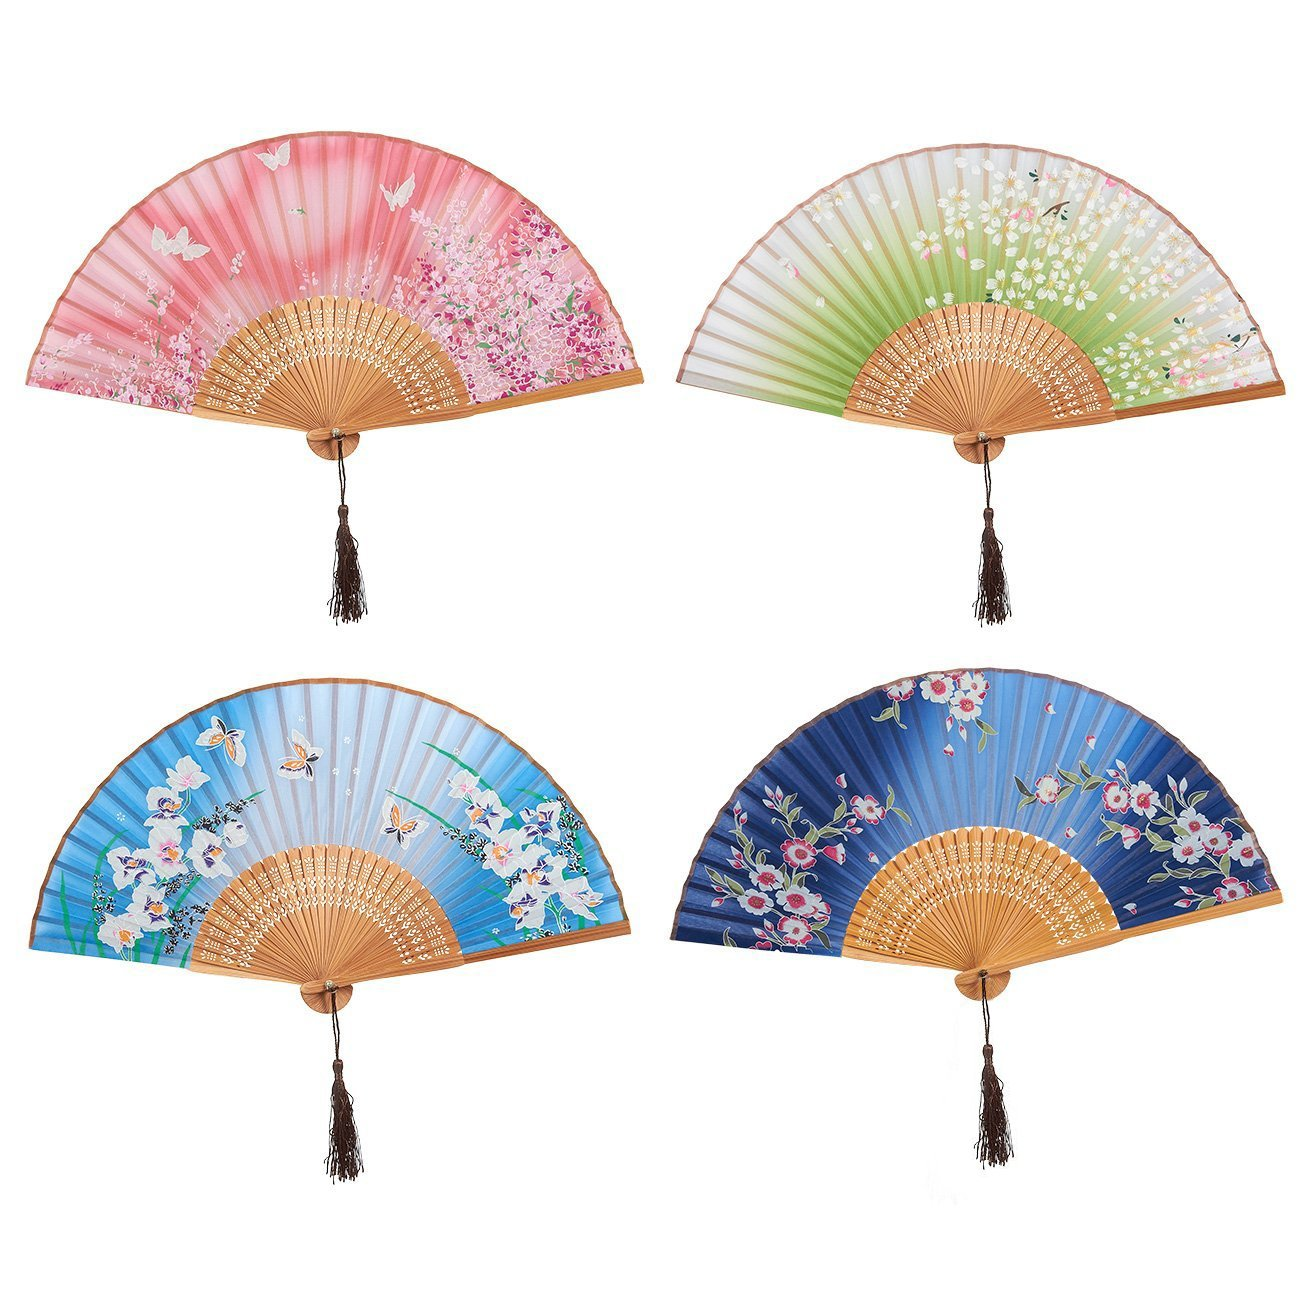 4-Piece Folding Fans - Hand-held Fans Women, 4 Different Japanese Style Colorful Designs Butterfly Floral Illustrations